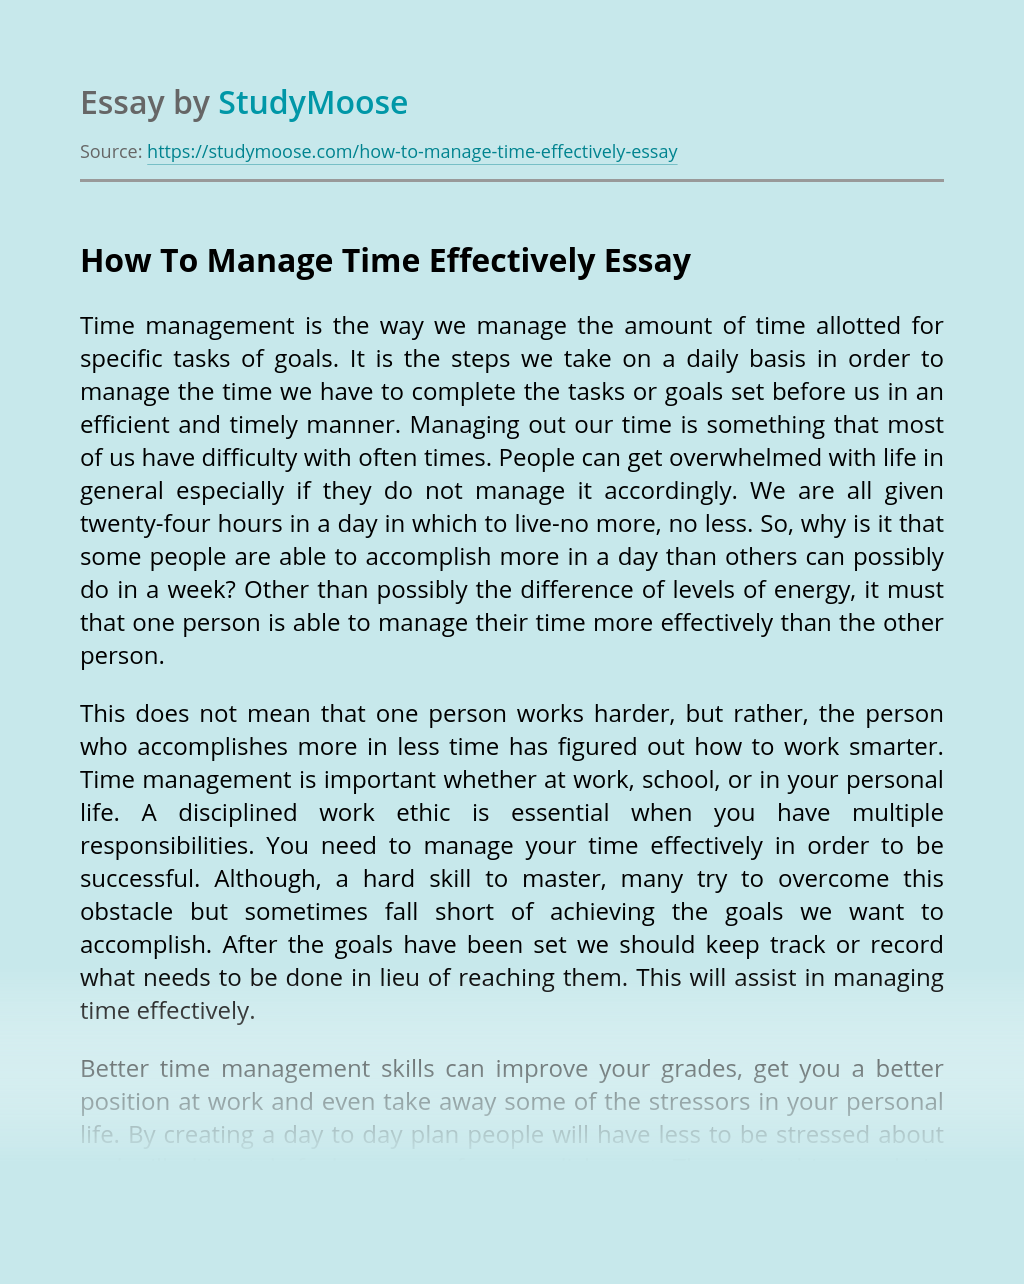 How To Manage Money Effectively Essay